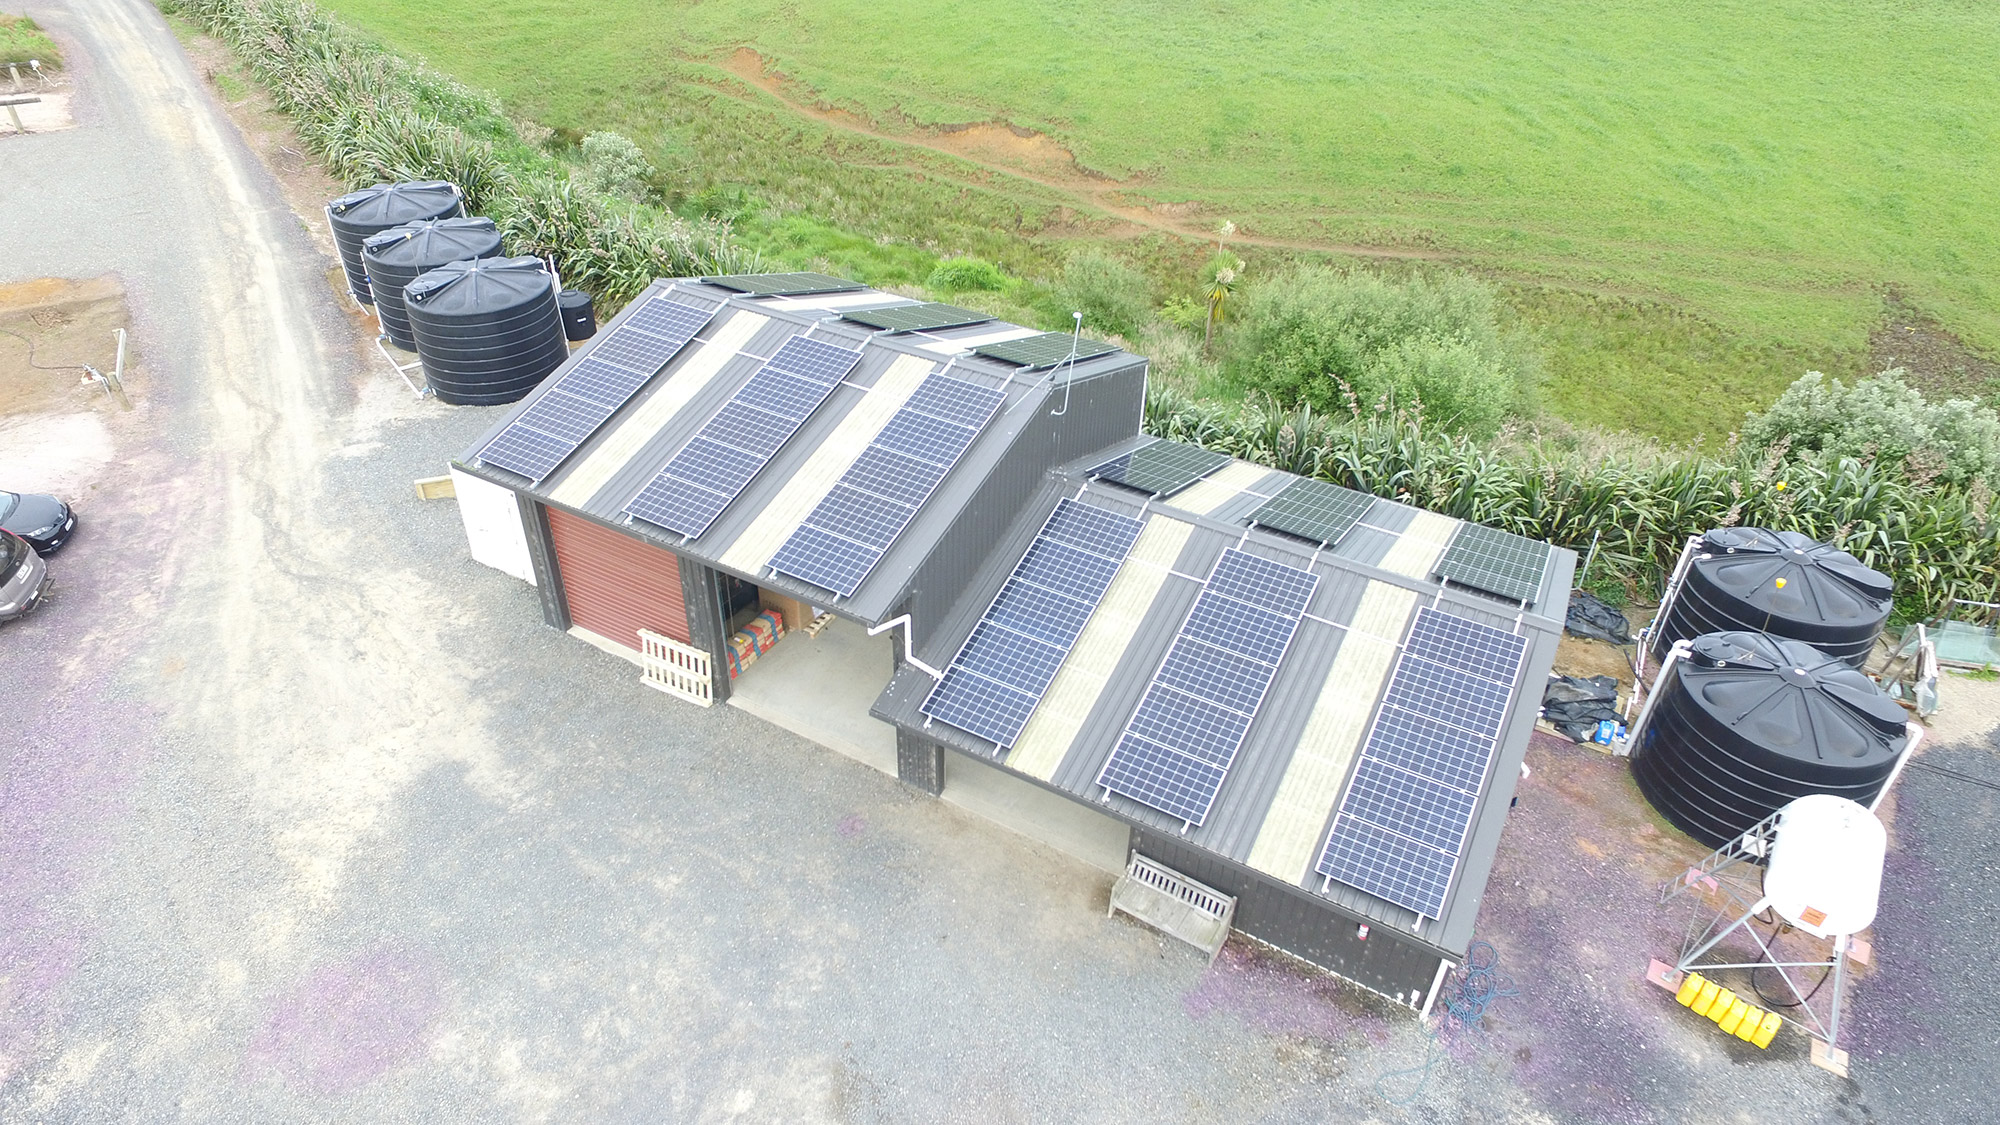 SkySolar-Solar-for-business-Scarborough-Fare-Herbs-4